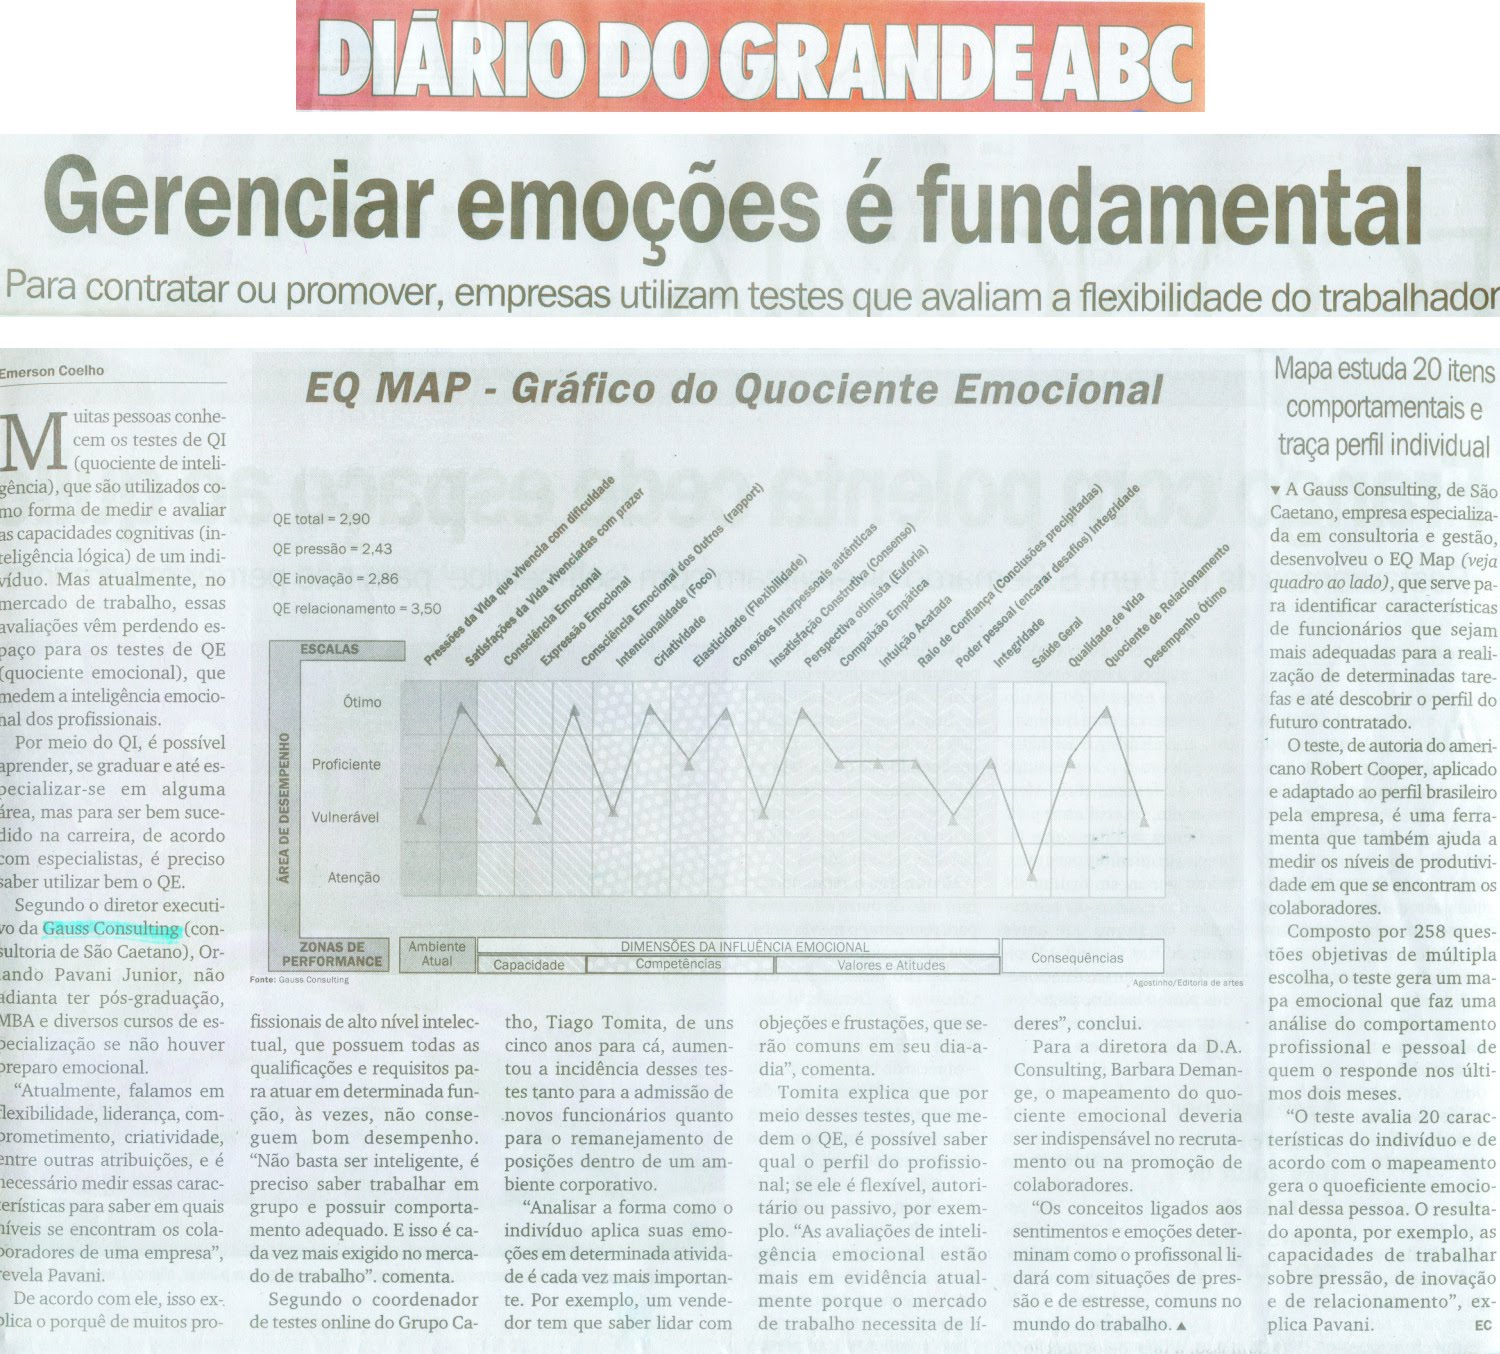 [DGABC_Gerenciar_fundamental_jul09]